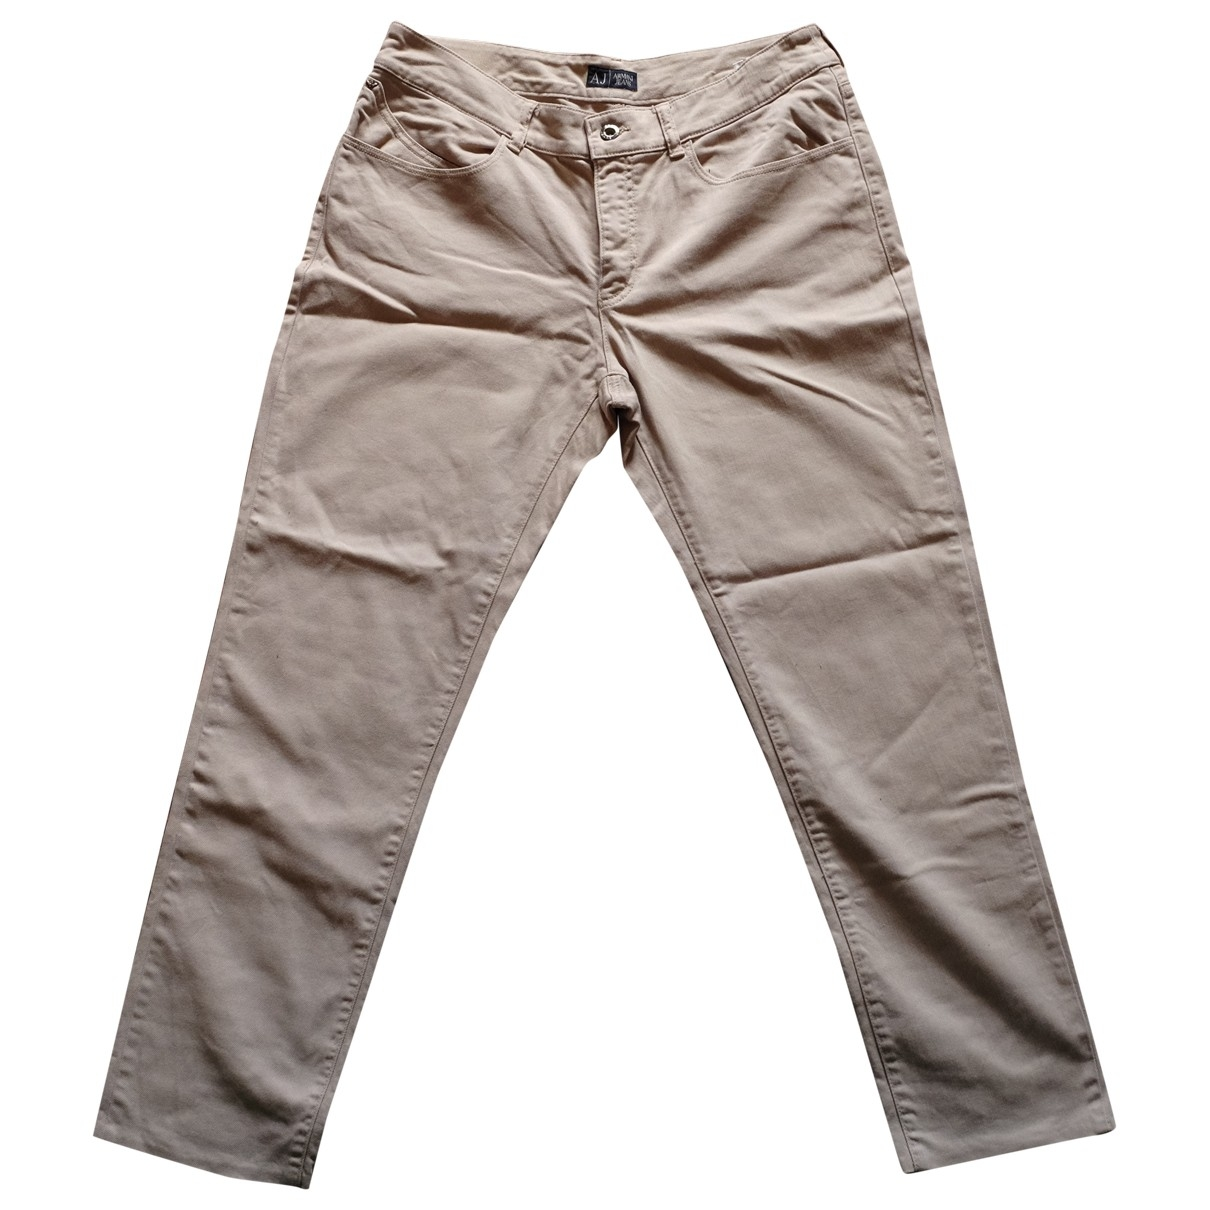 Armani Jeans \N Beige Cotton Trousers for Men M International